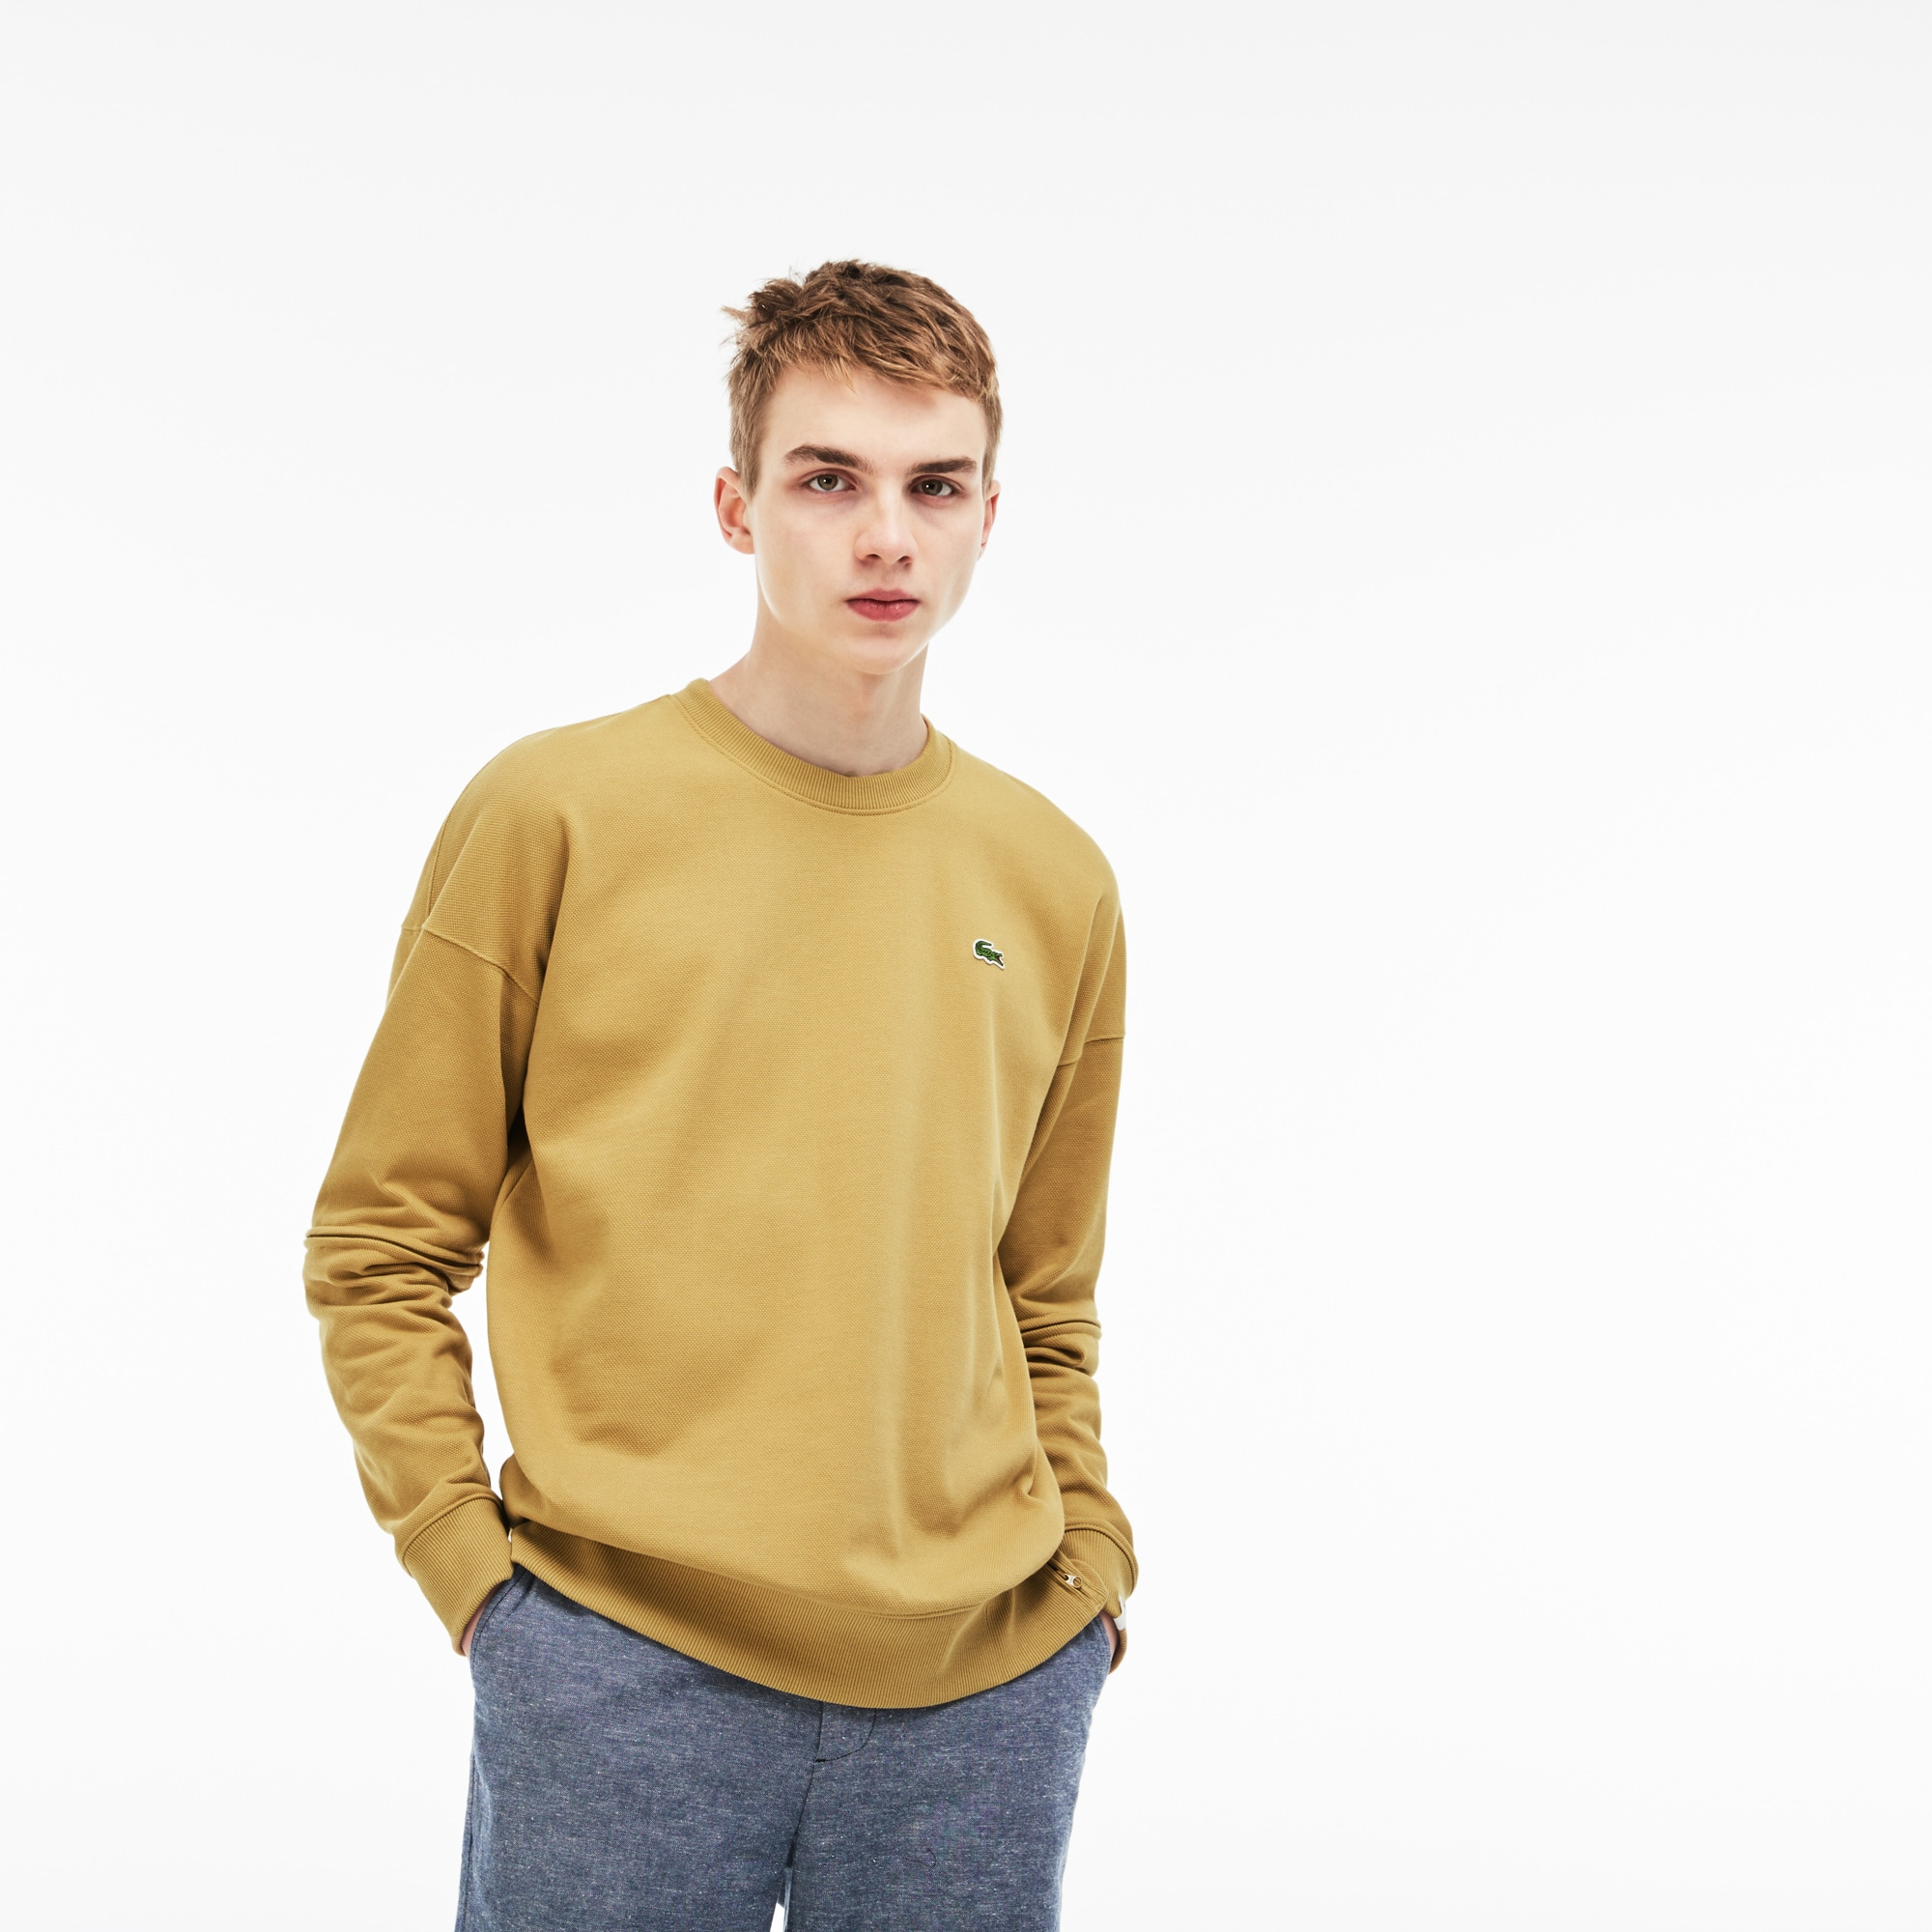 Men's Lacoste LIVE Loose Fleece Piqué Sweatshirt